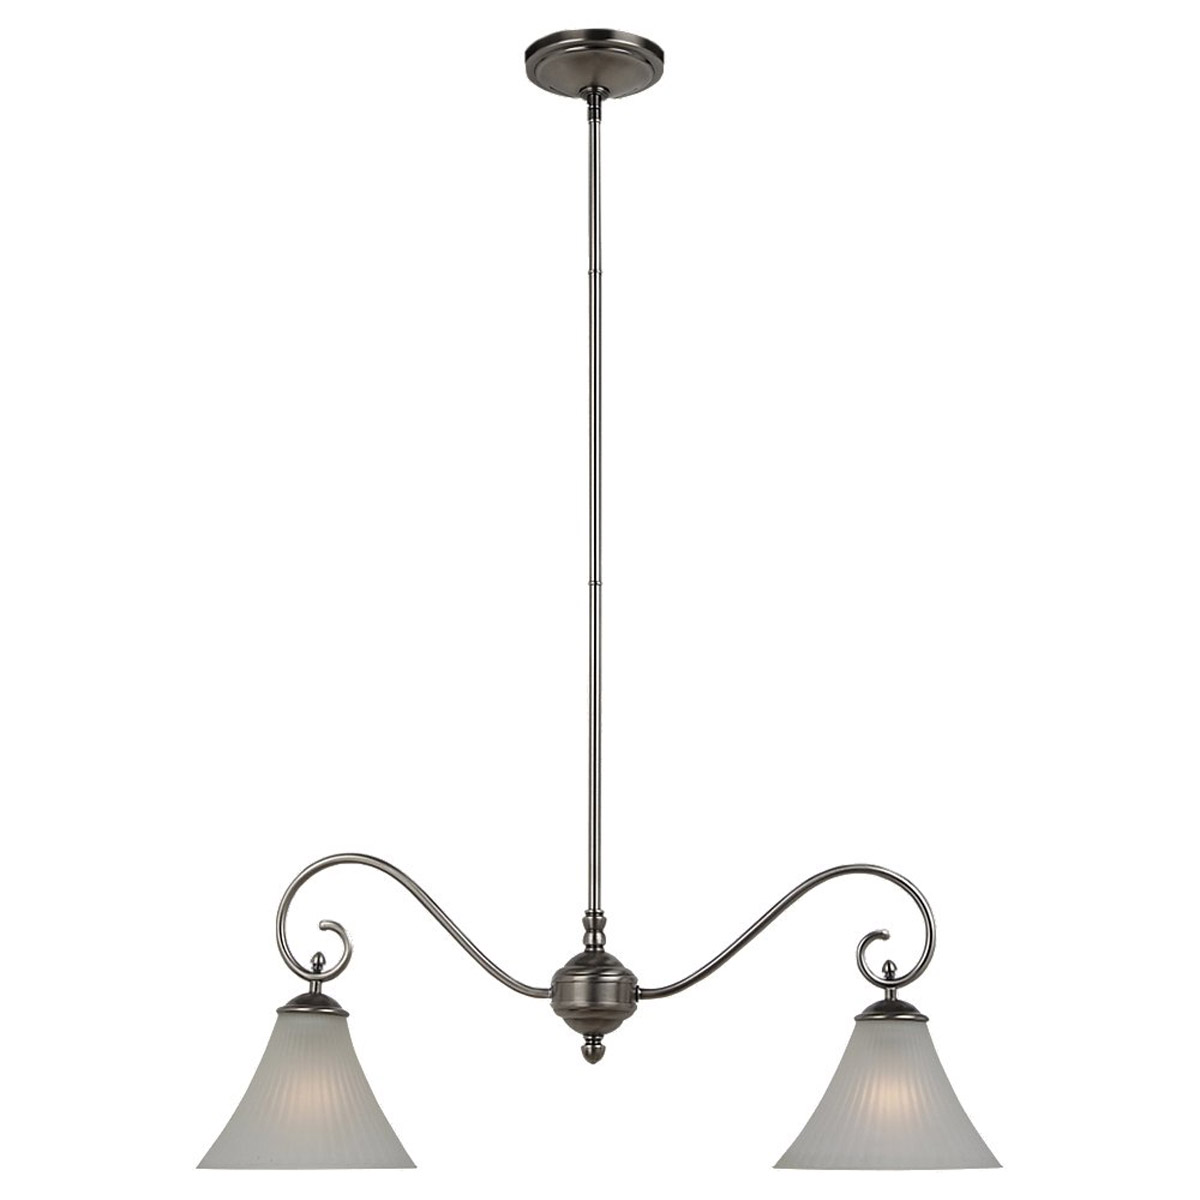 Sea Gull Lighting Joliet 2 Light Island Pendant in Antique Brushed Nickel 66935-965